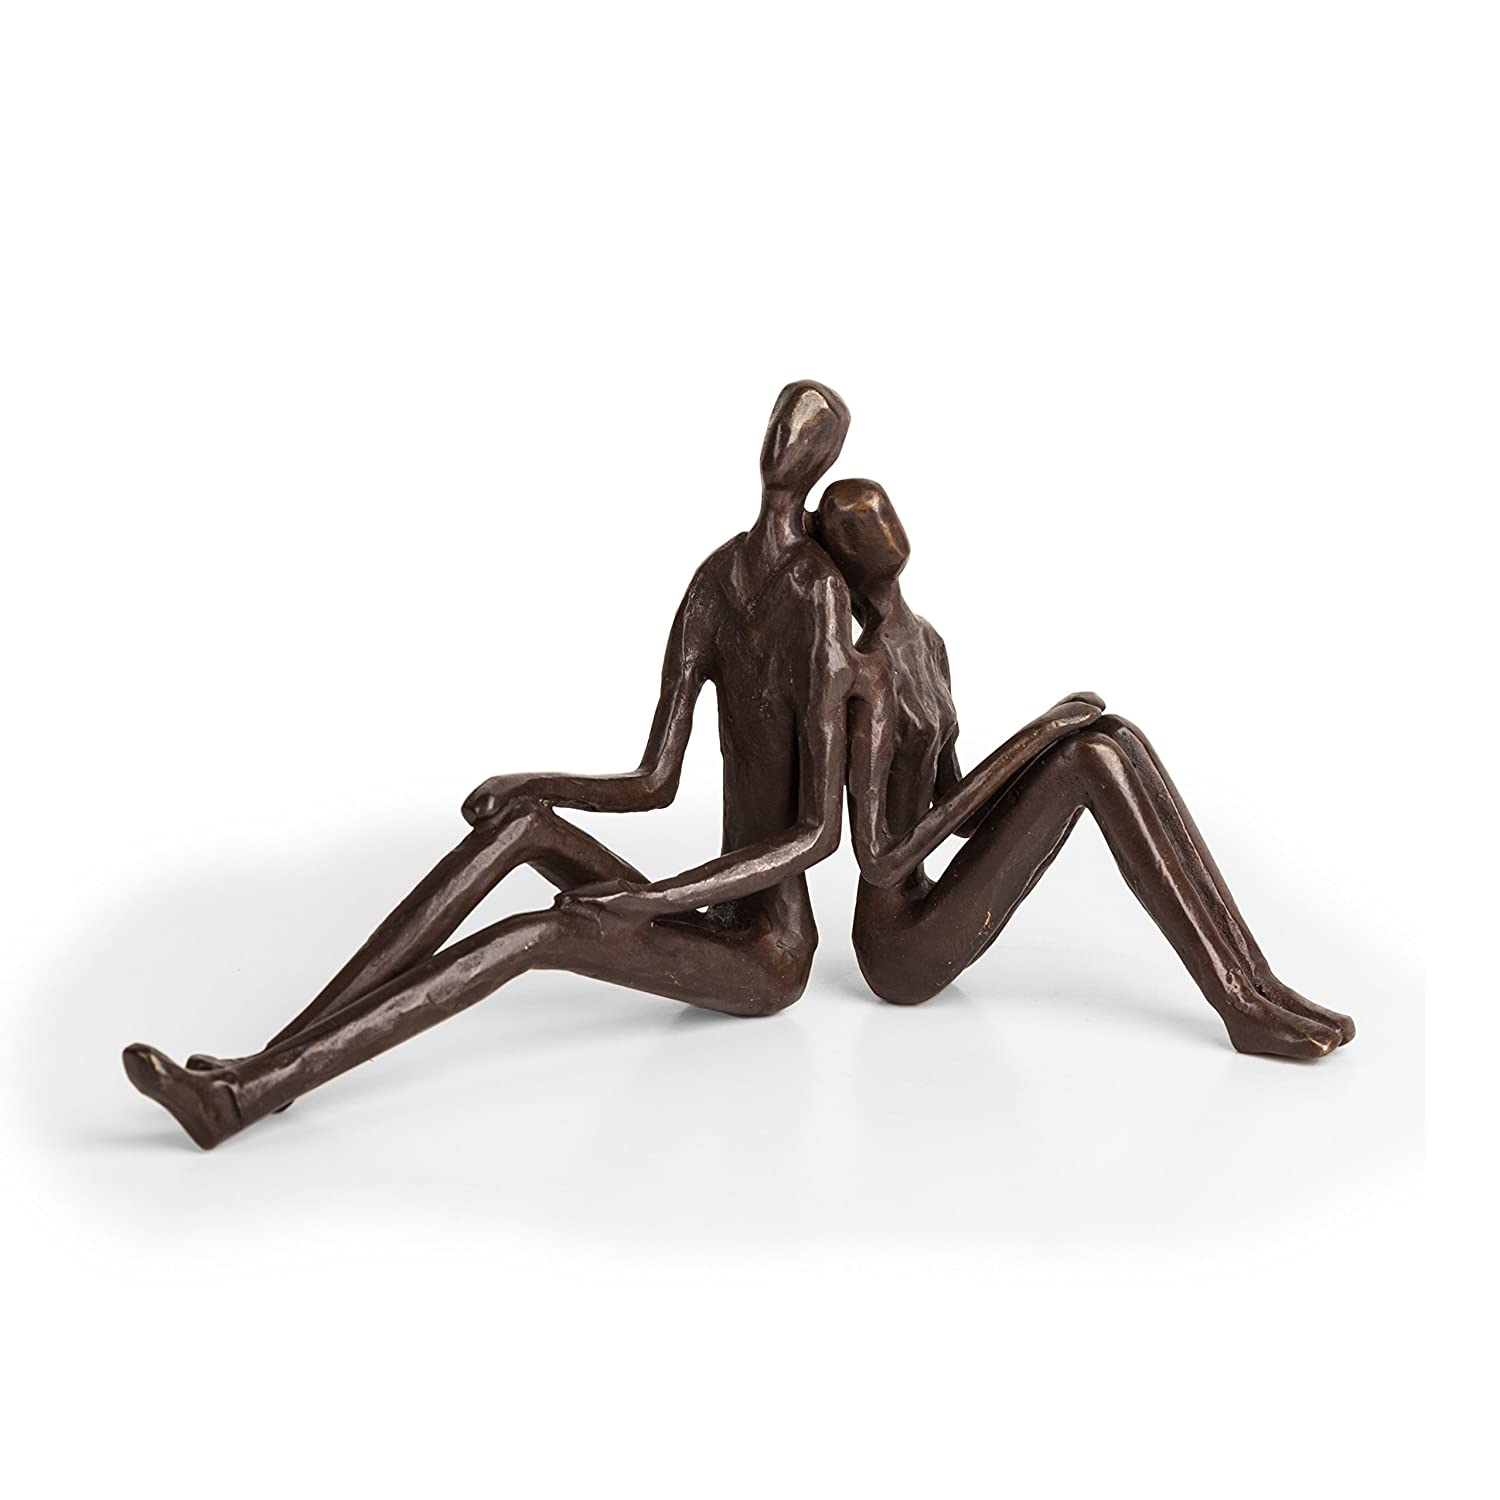 Danya B. ZD15004 Contemporary Metal Art Home Décor - Cast Bronze Sculpture - Romantic Couple